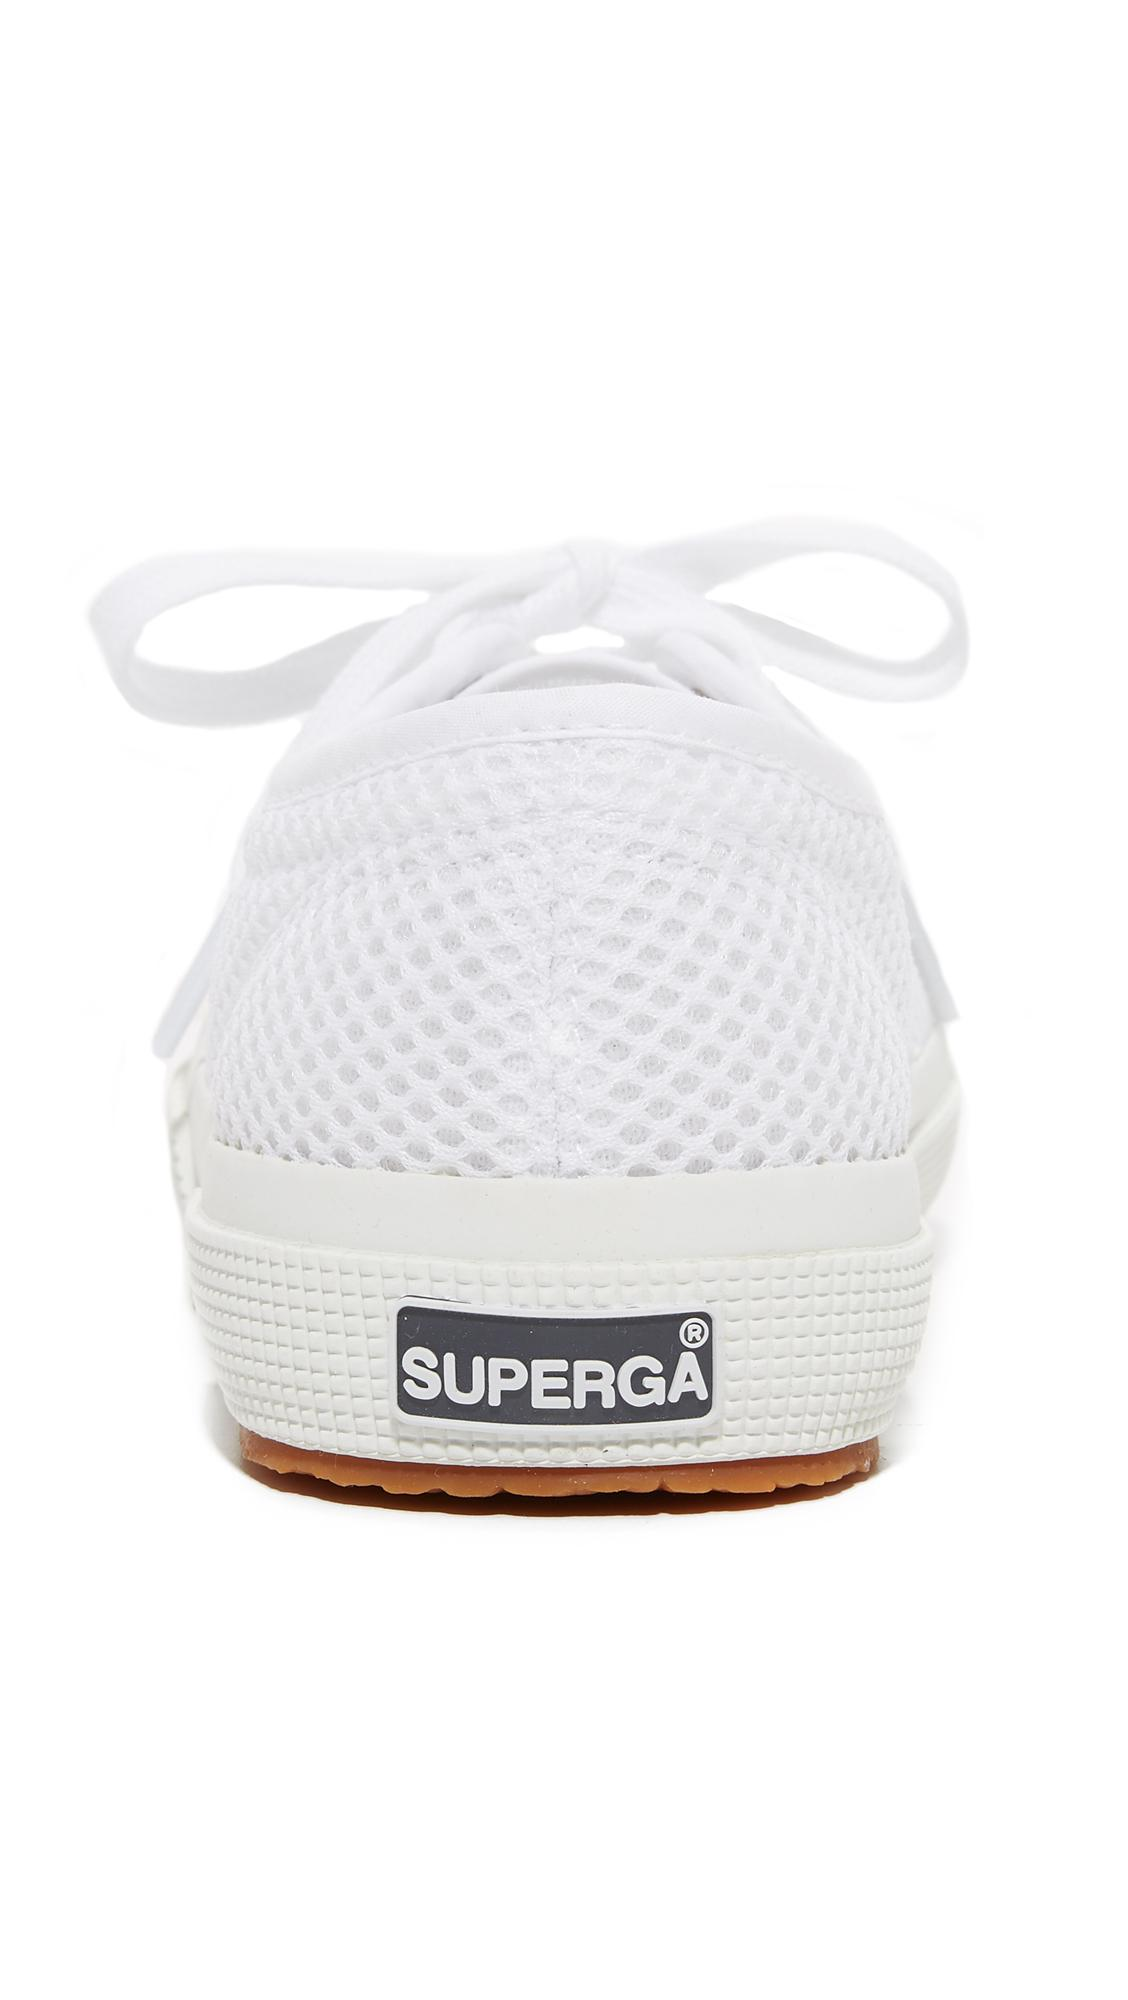 Superga Lace 2750 Mesh Cotu Sneakers in White